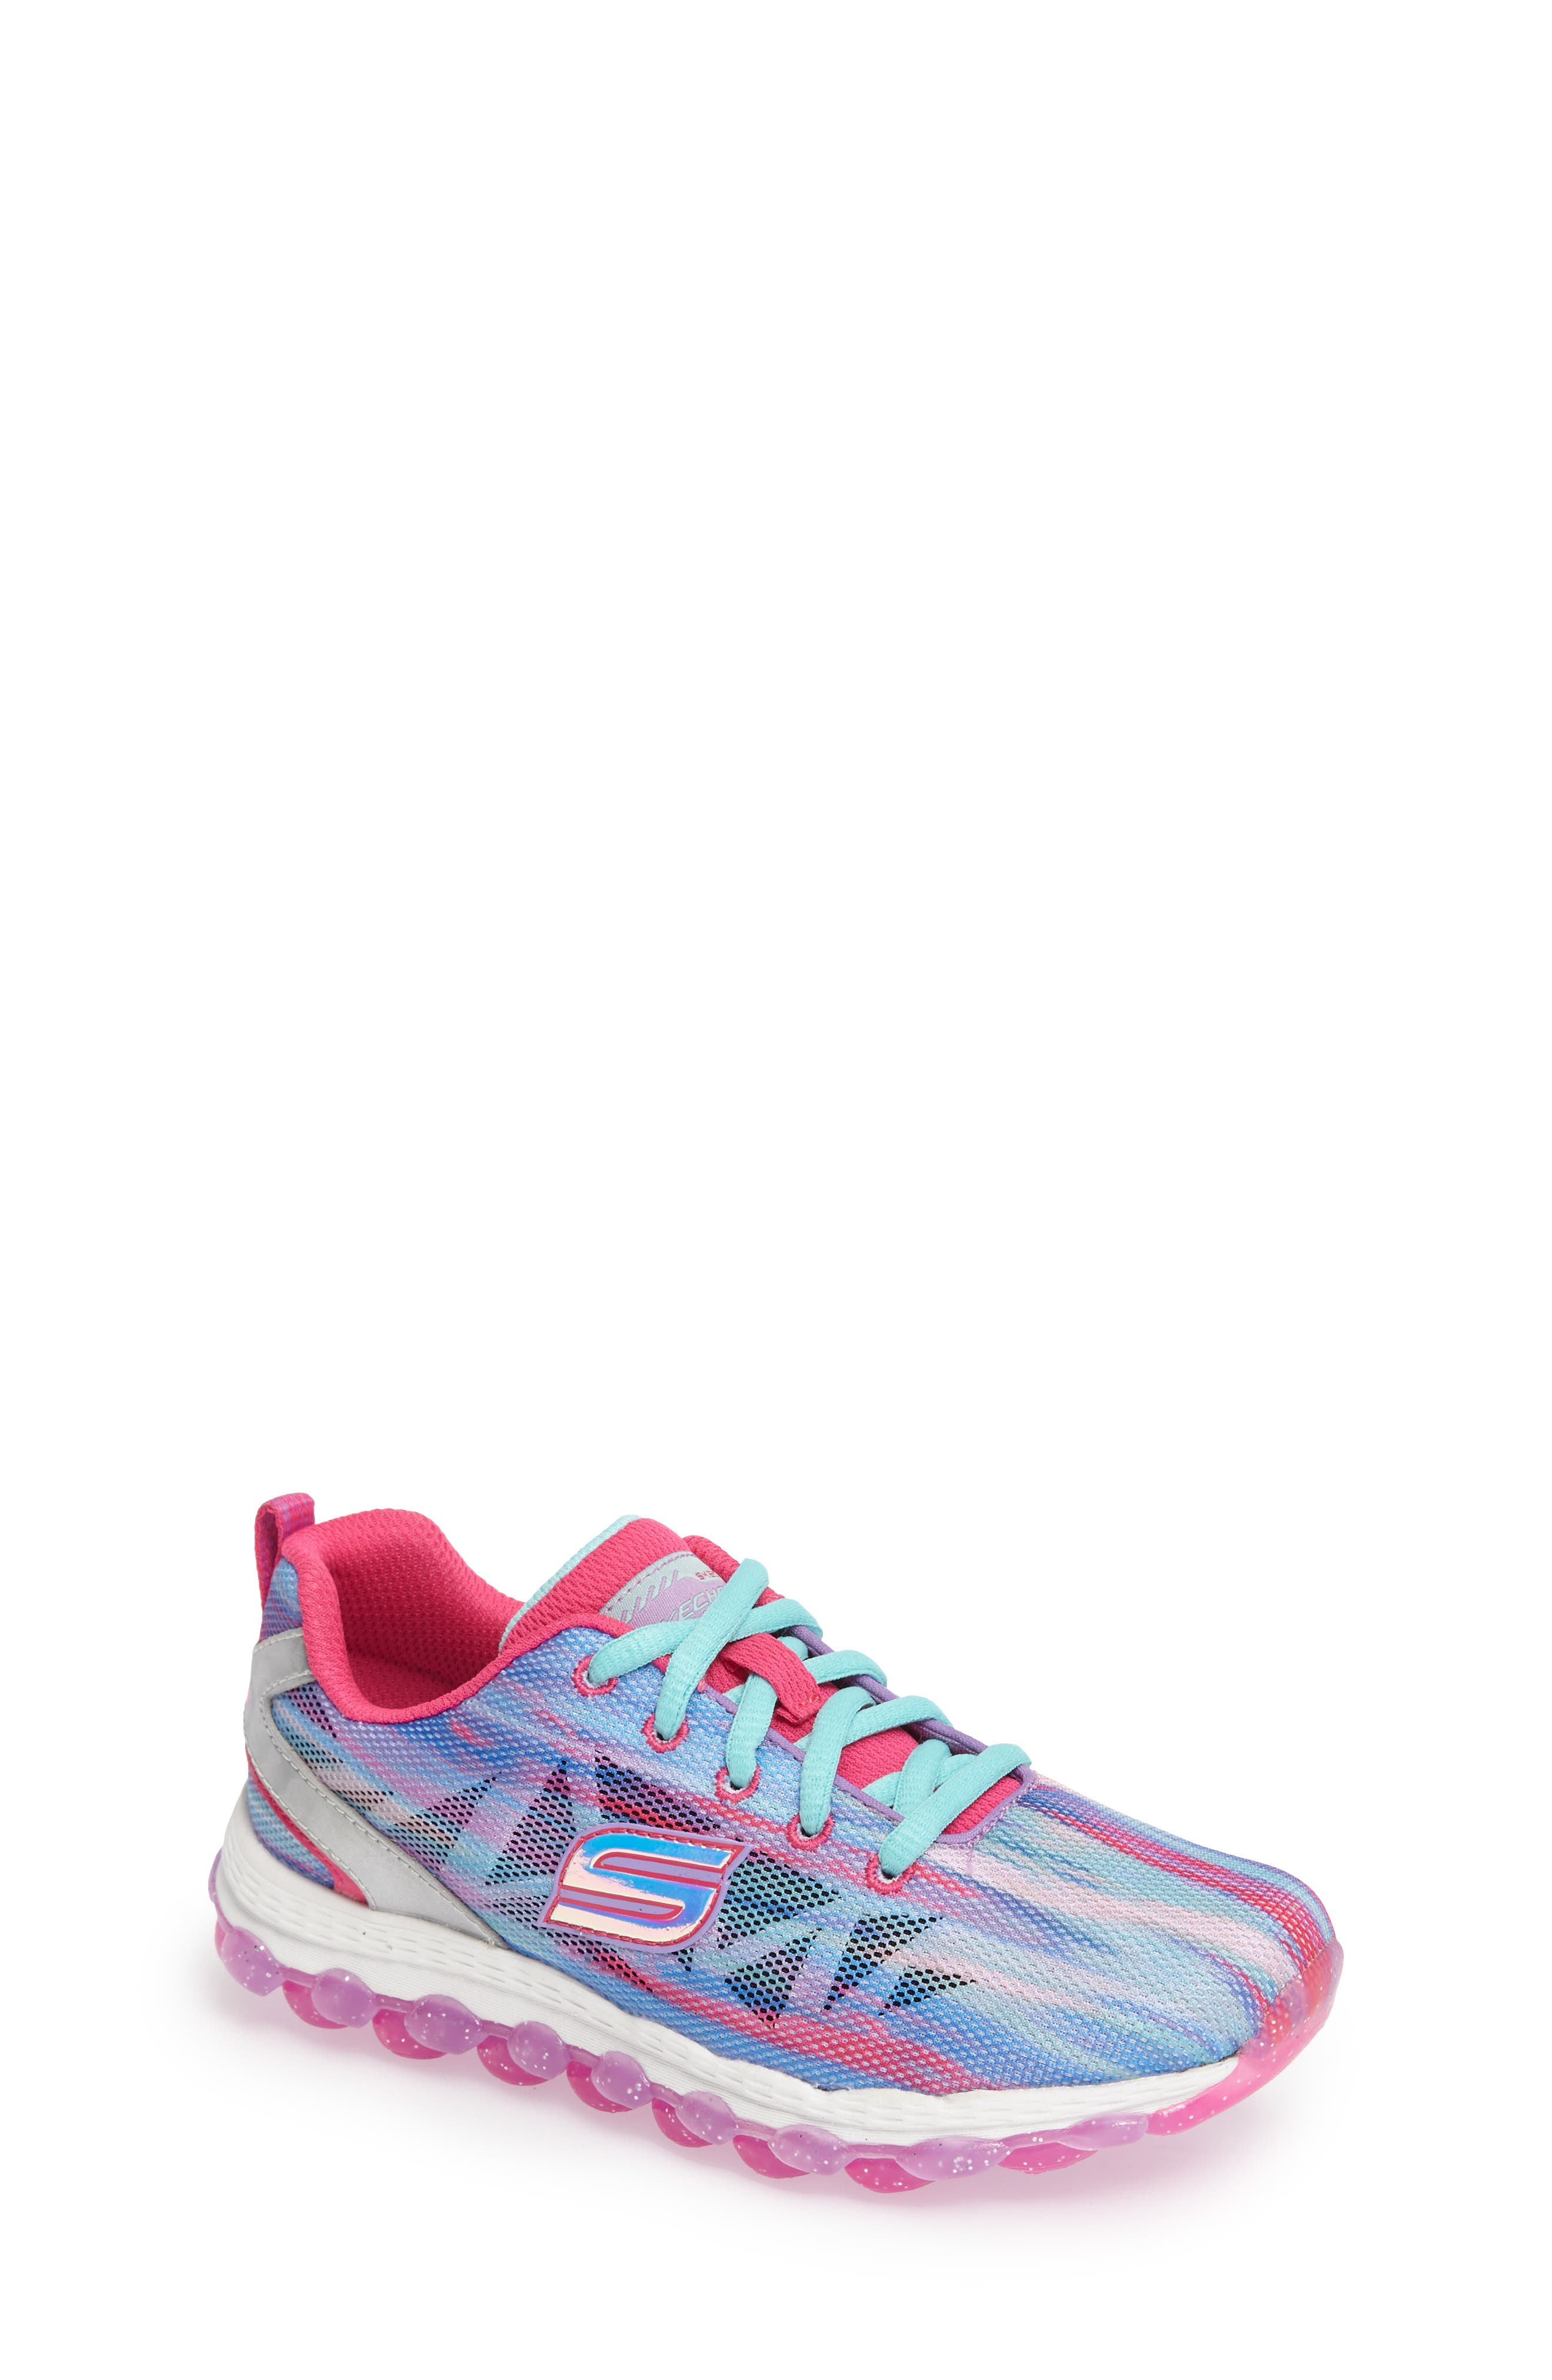 Skech-Air Ultra Sneaker,                         Main,                         color, 650